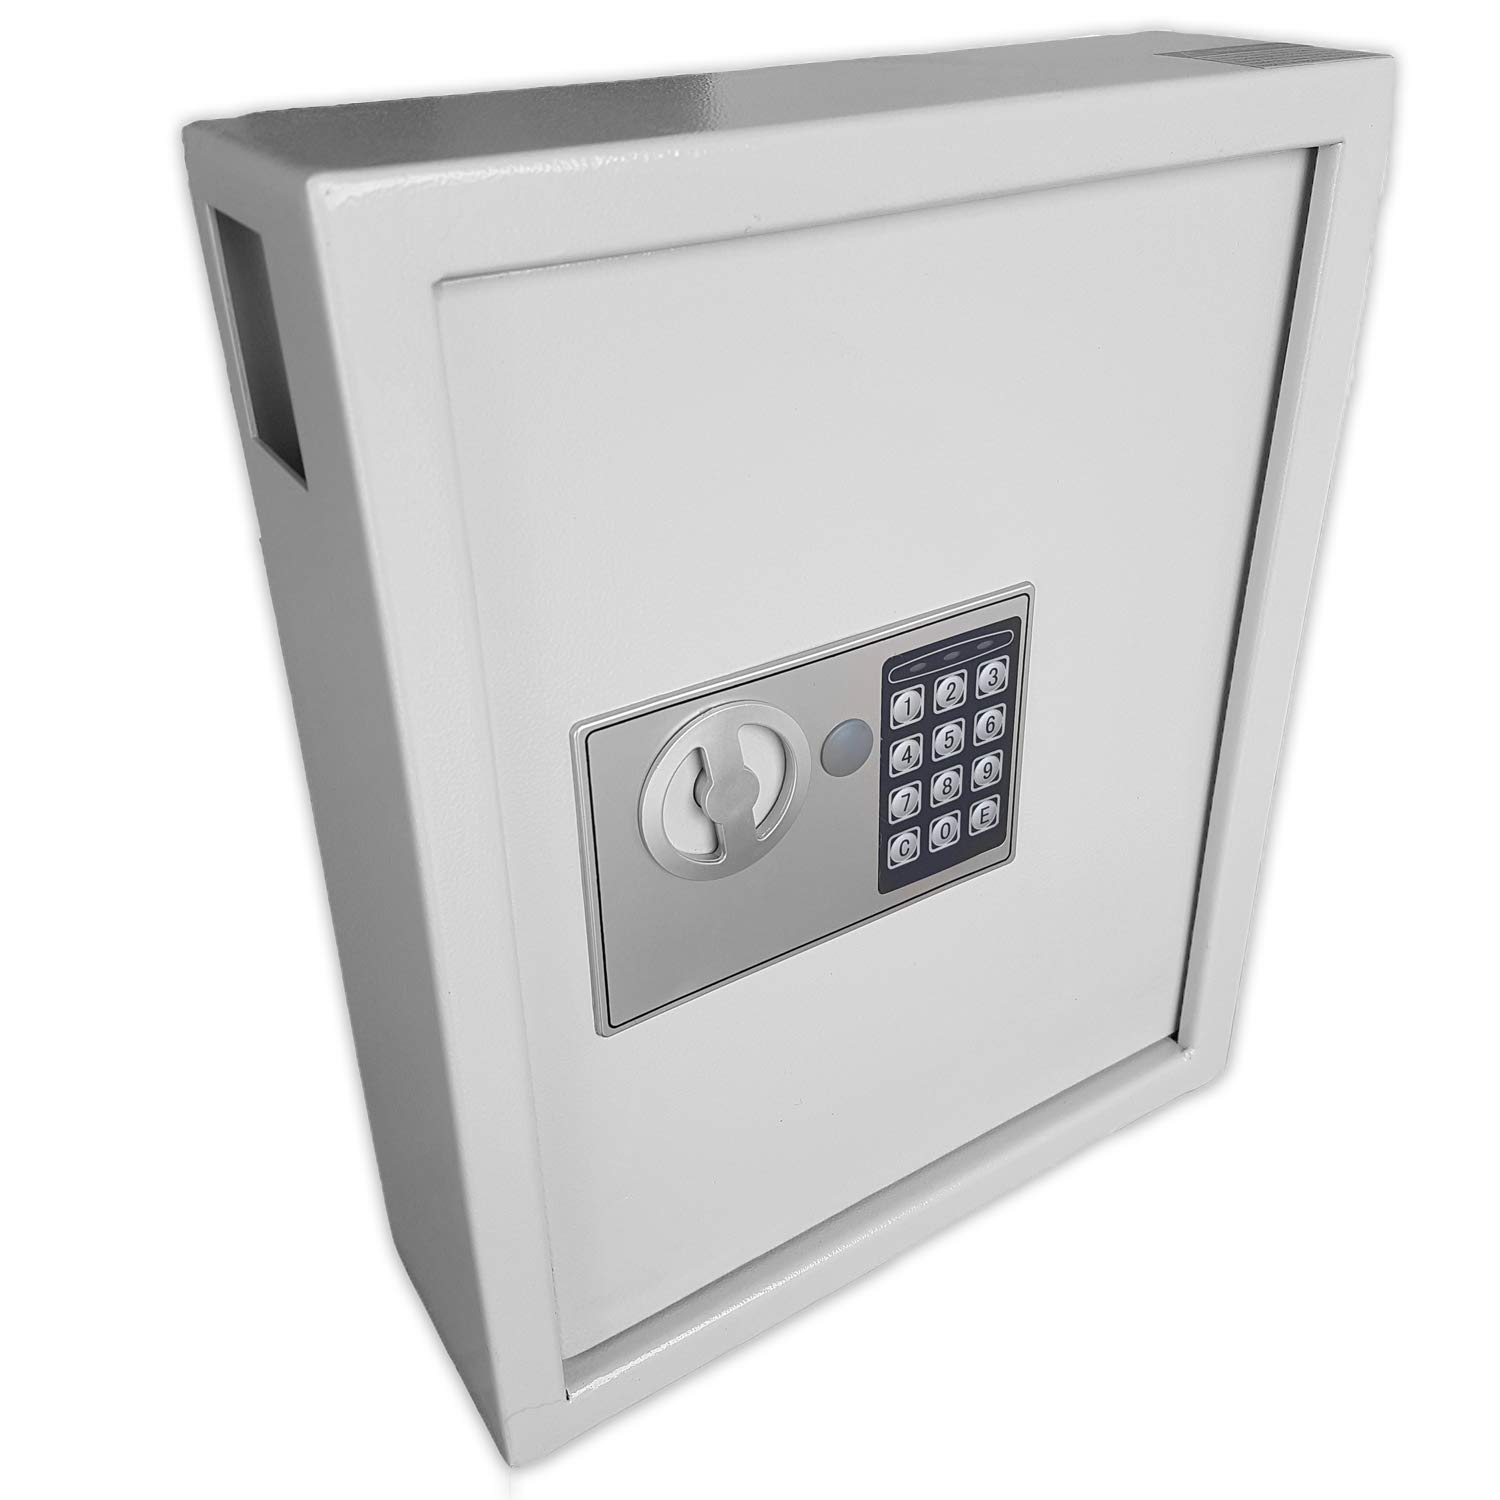 Futura 40 Key Safe Digital Key Cabinet Safe Box, Electronic Combination  Lock, Wall or Floor Mounted, Steel High Security Storage Box Supplied with  40